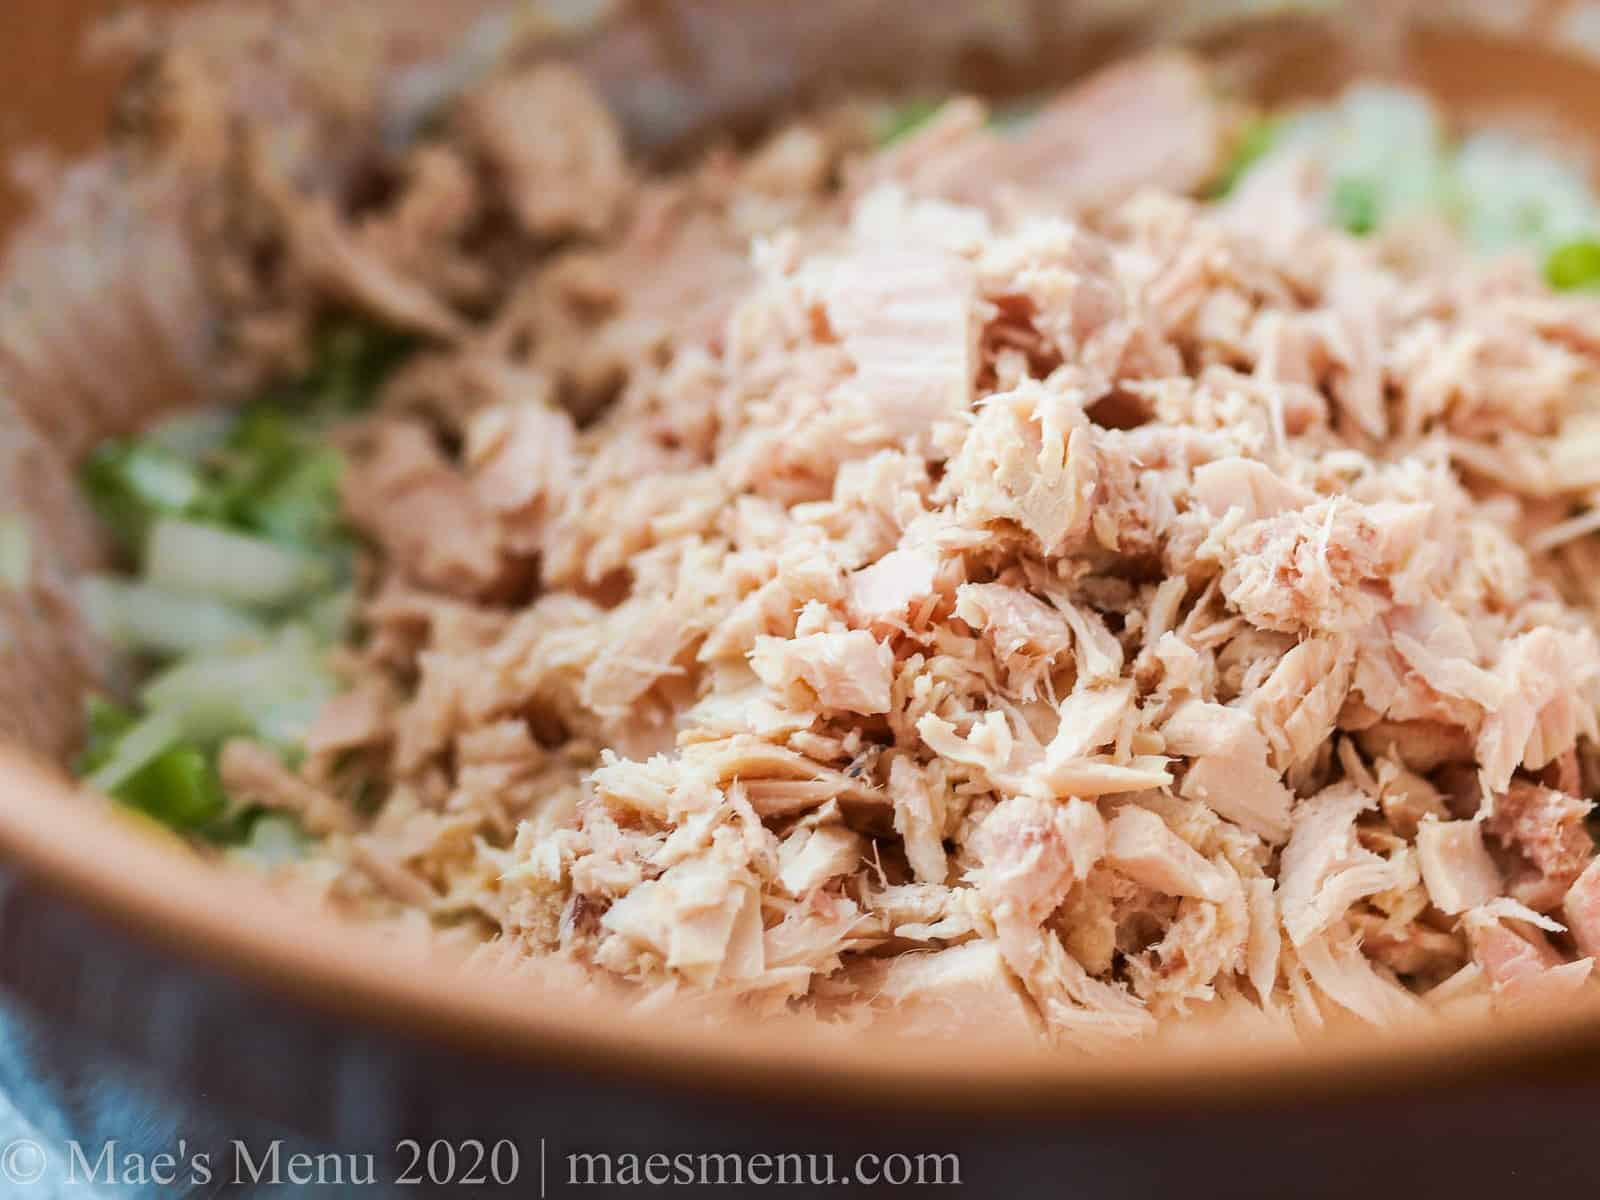 A mixing bowl full of ingredients for tuna macaroni salad.